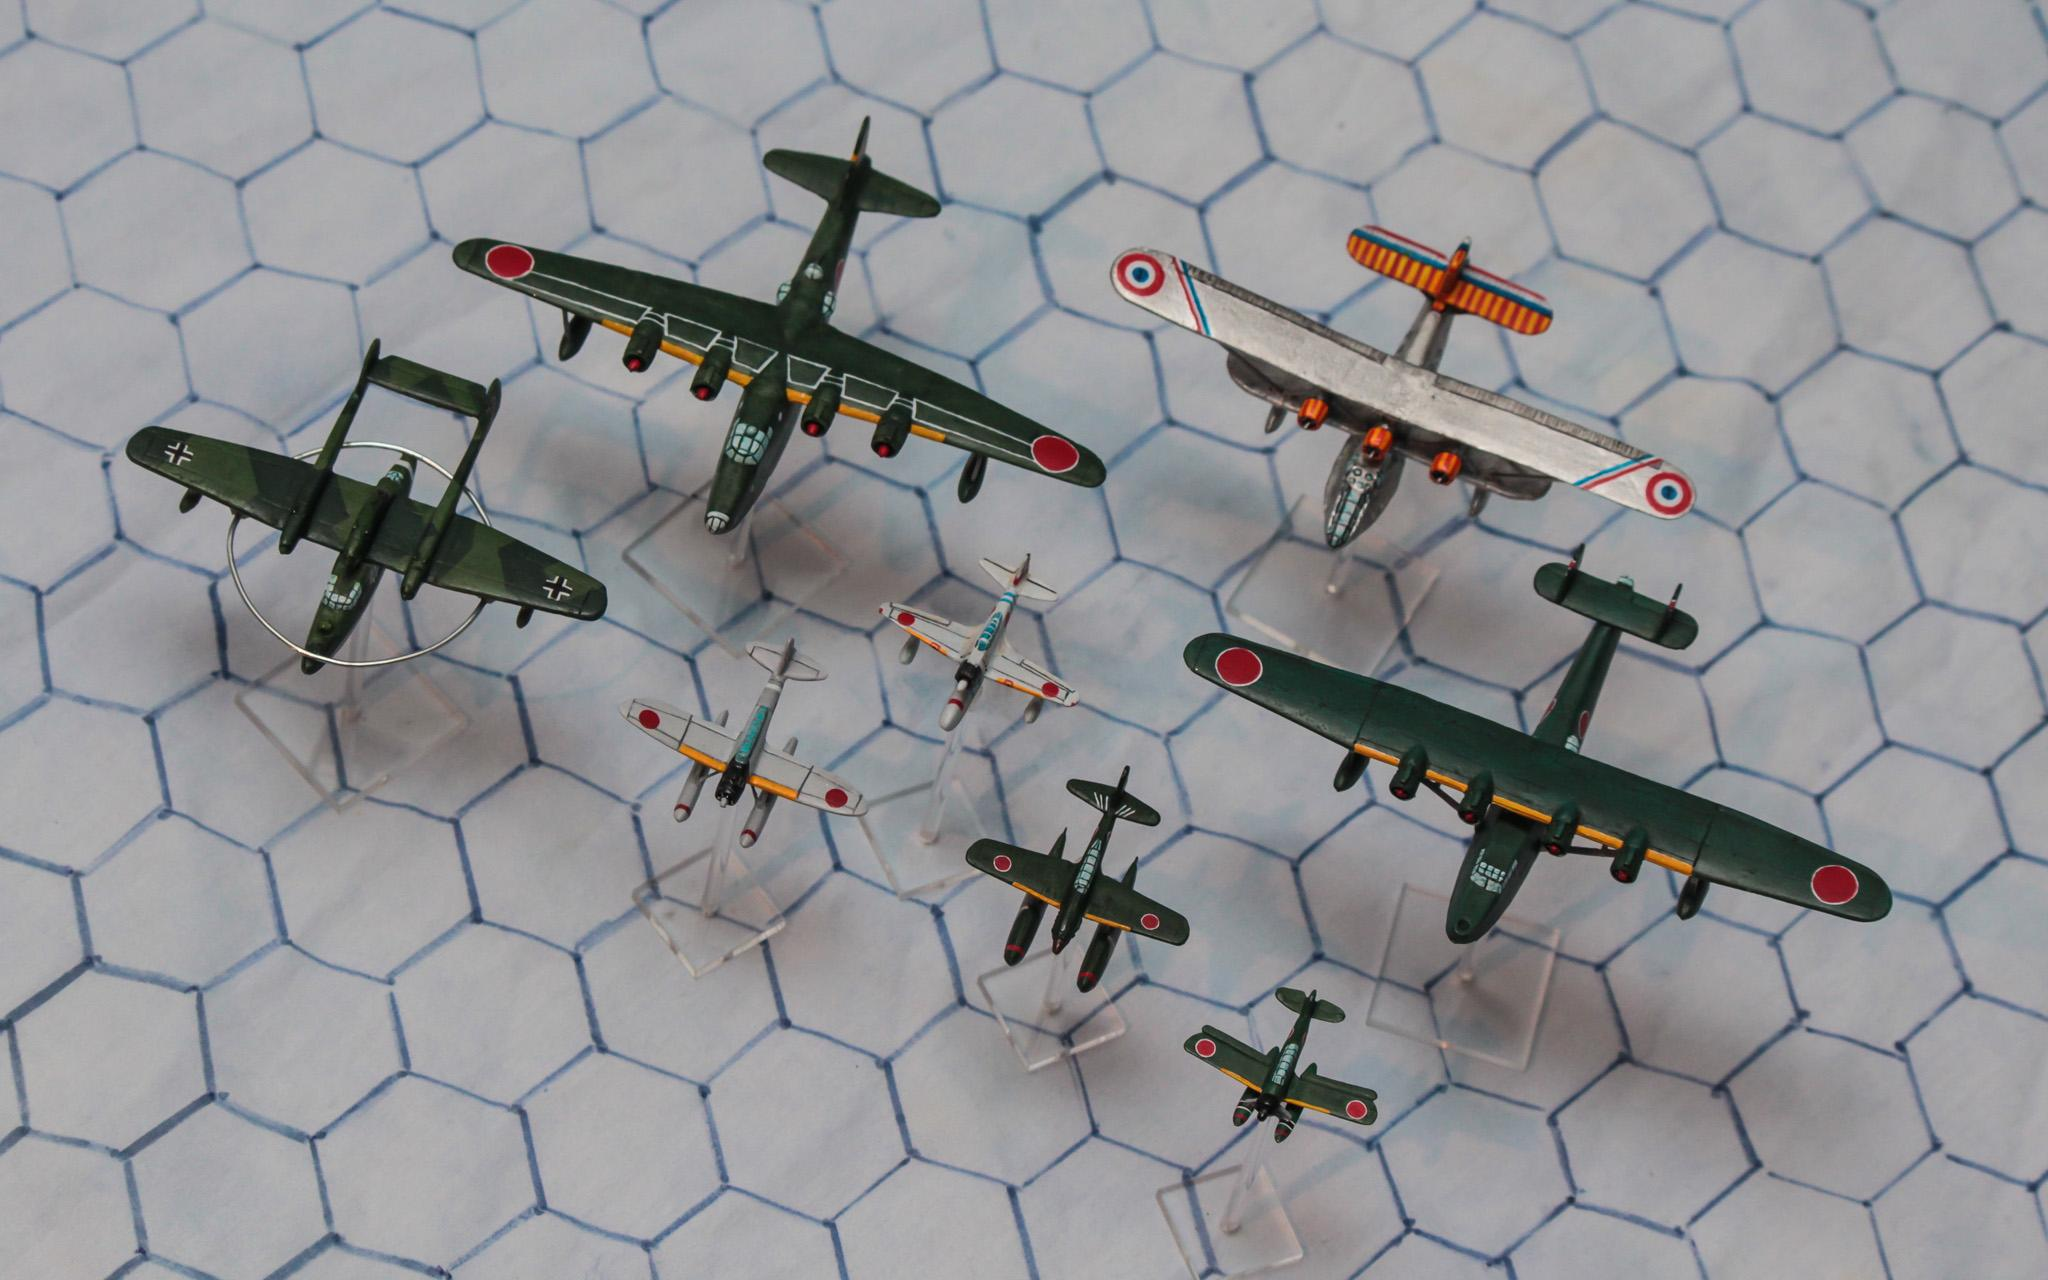 1:300 Scale, 6mm Scale, Air Combat, Axis, Flying Boat, French, Germans, Imperial Japan, Luftwaffe, Seaplane, World War 2